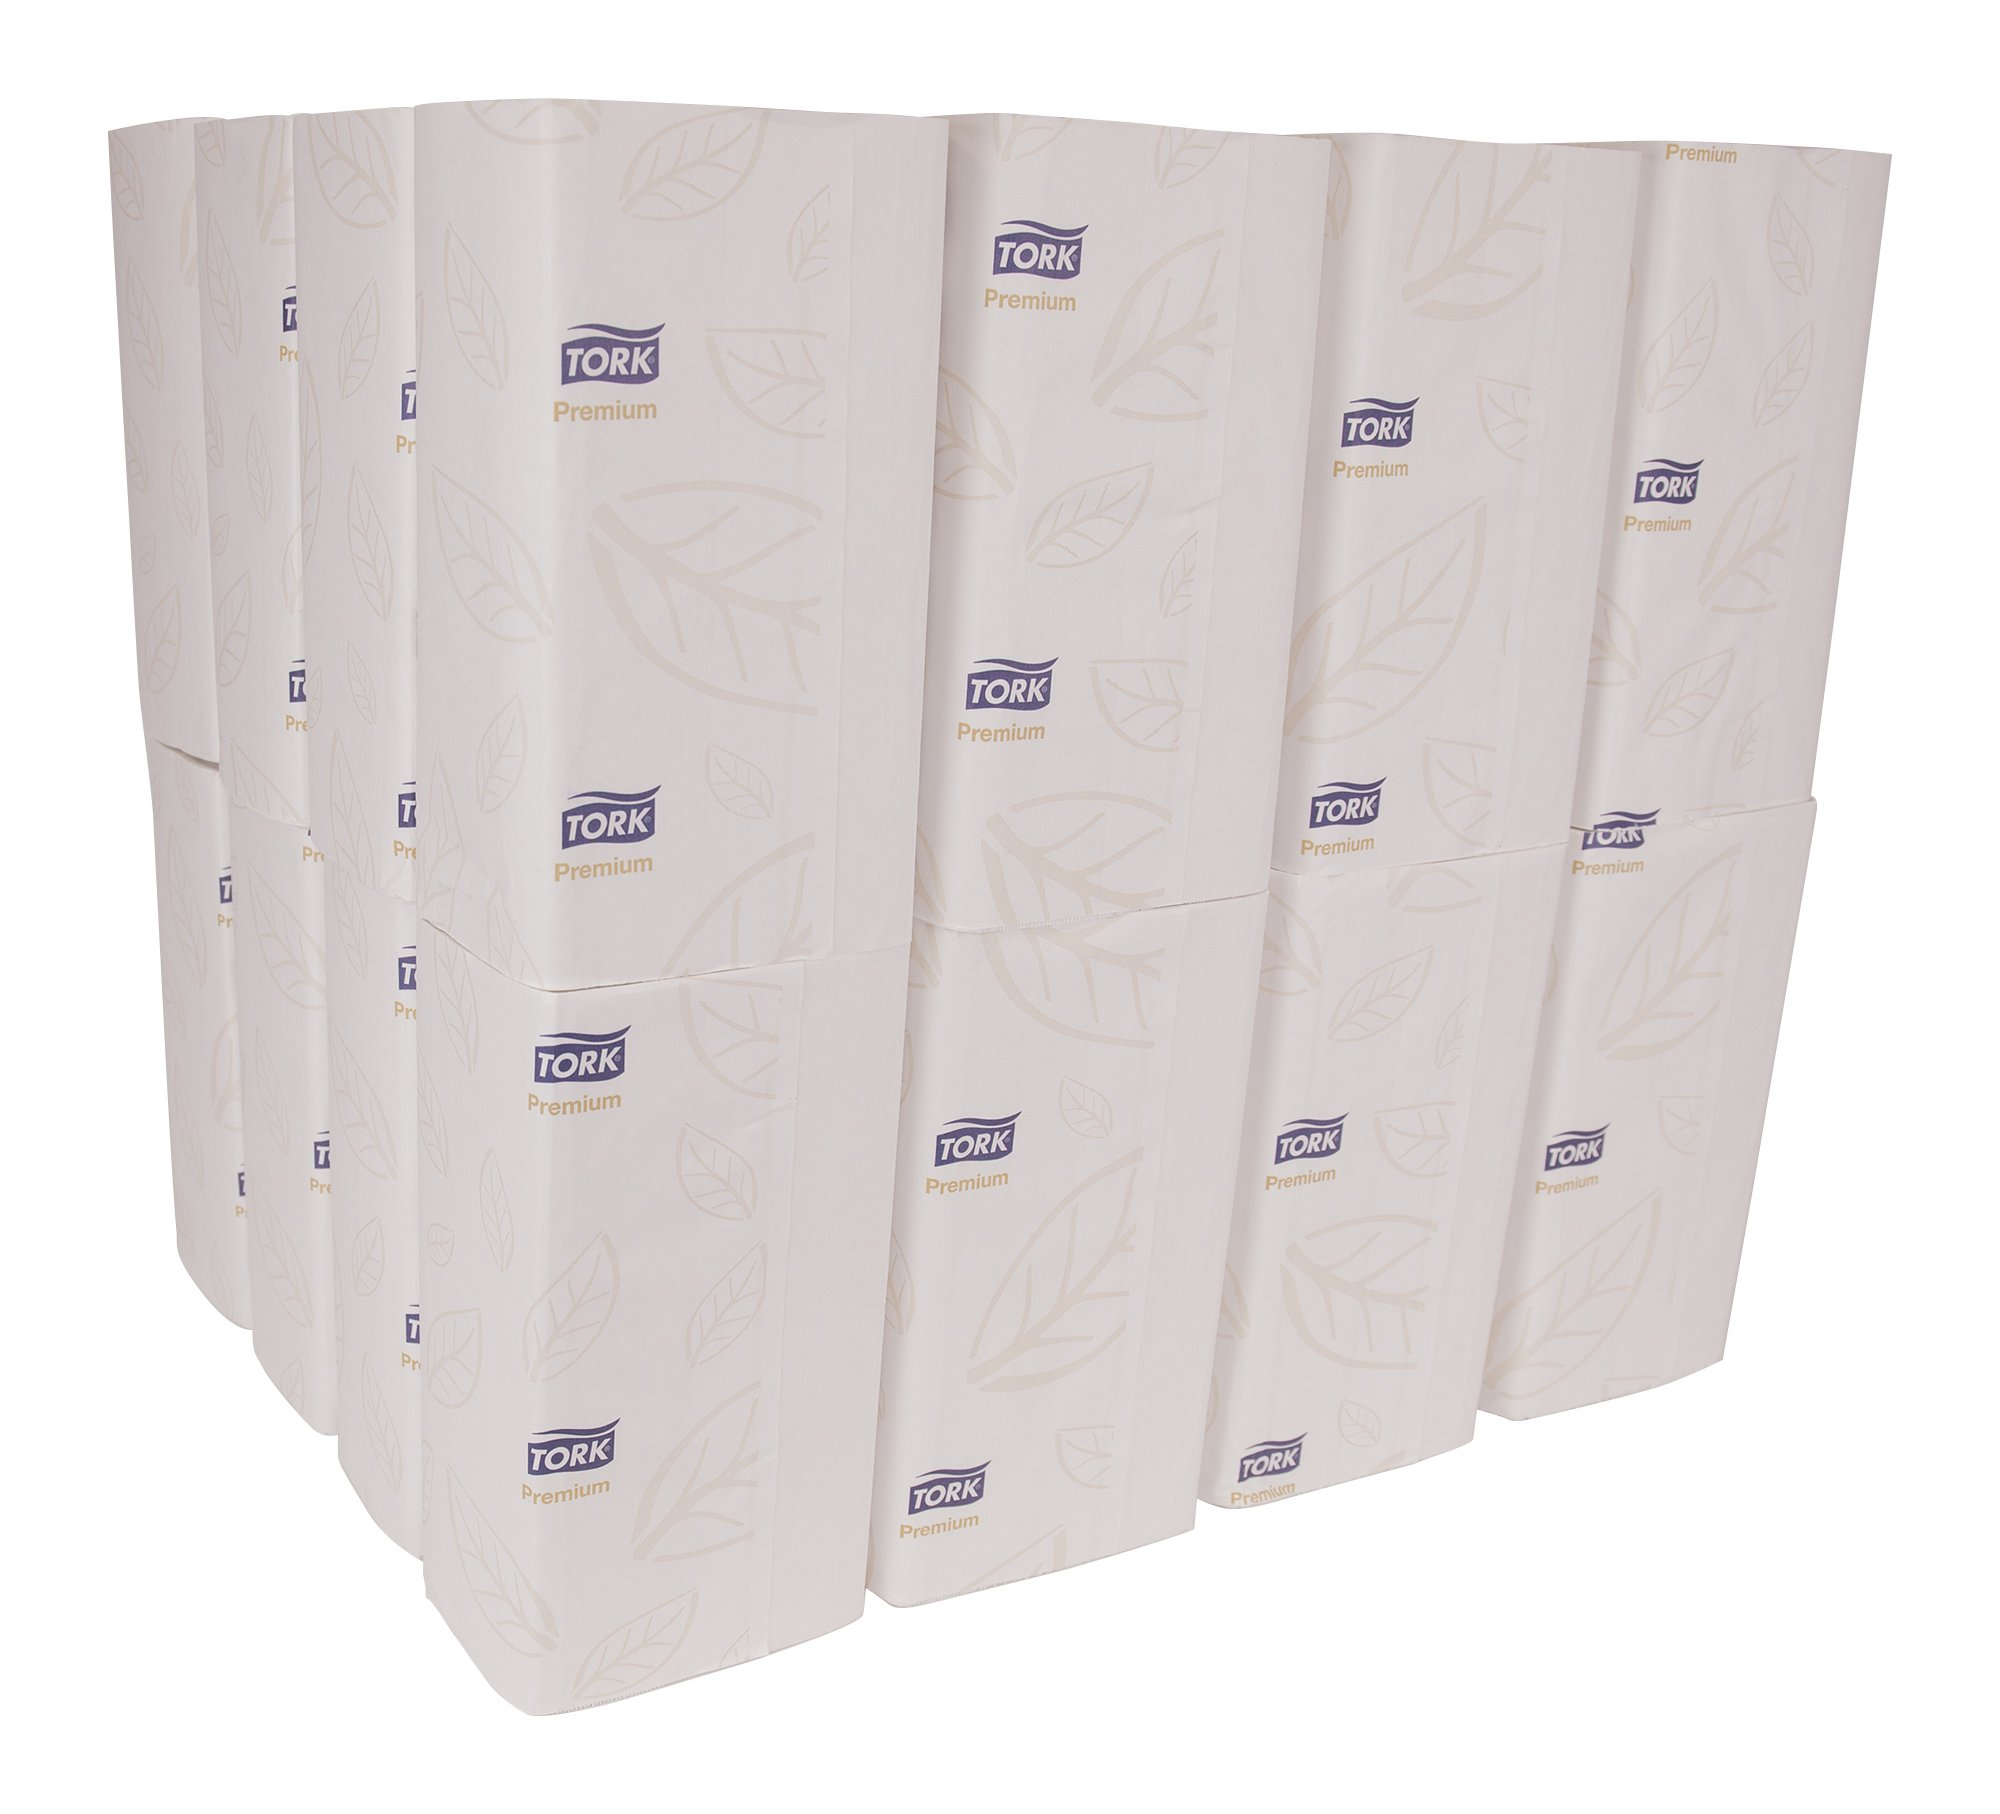 Tork Premium MB572 Soft Xpress Multifold Paper Hand Towel, 4-Panel, 2-Ply, 9.125'' Width x 3.625'' Length, White (Case of 32 Packs, 94 per Pack, 3,008 Towels) by Tork (Image #2)